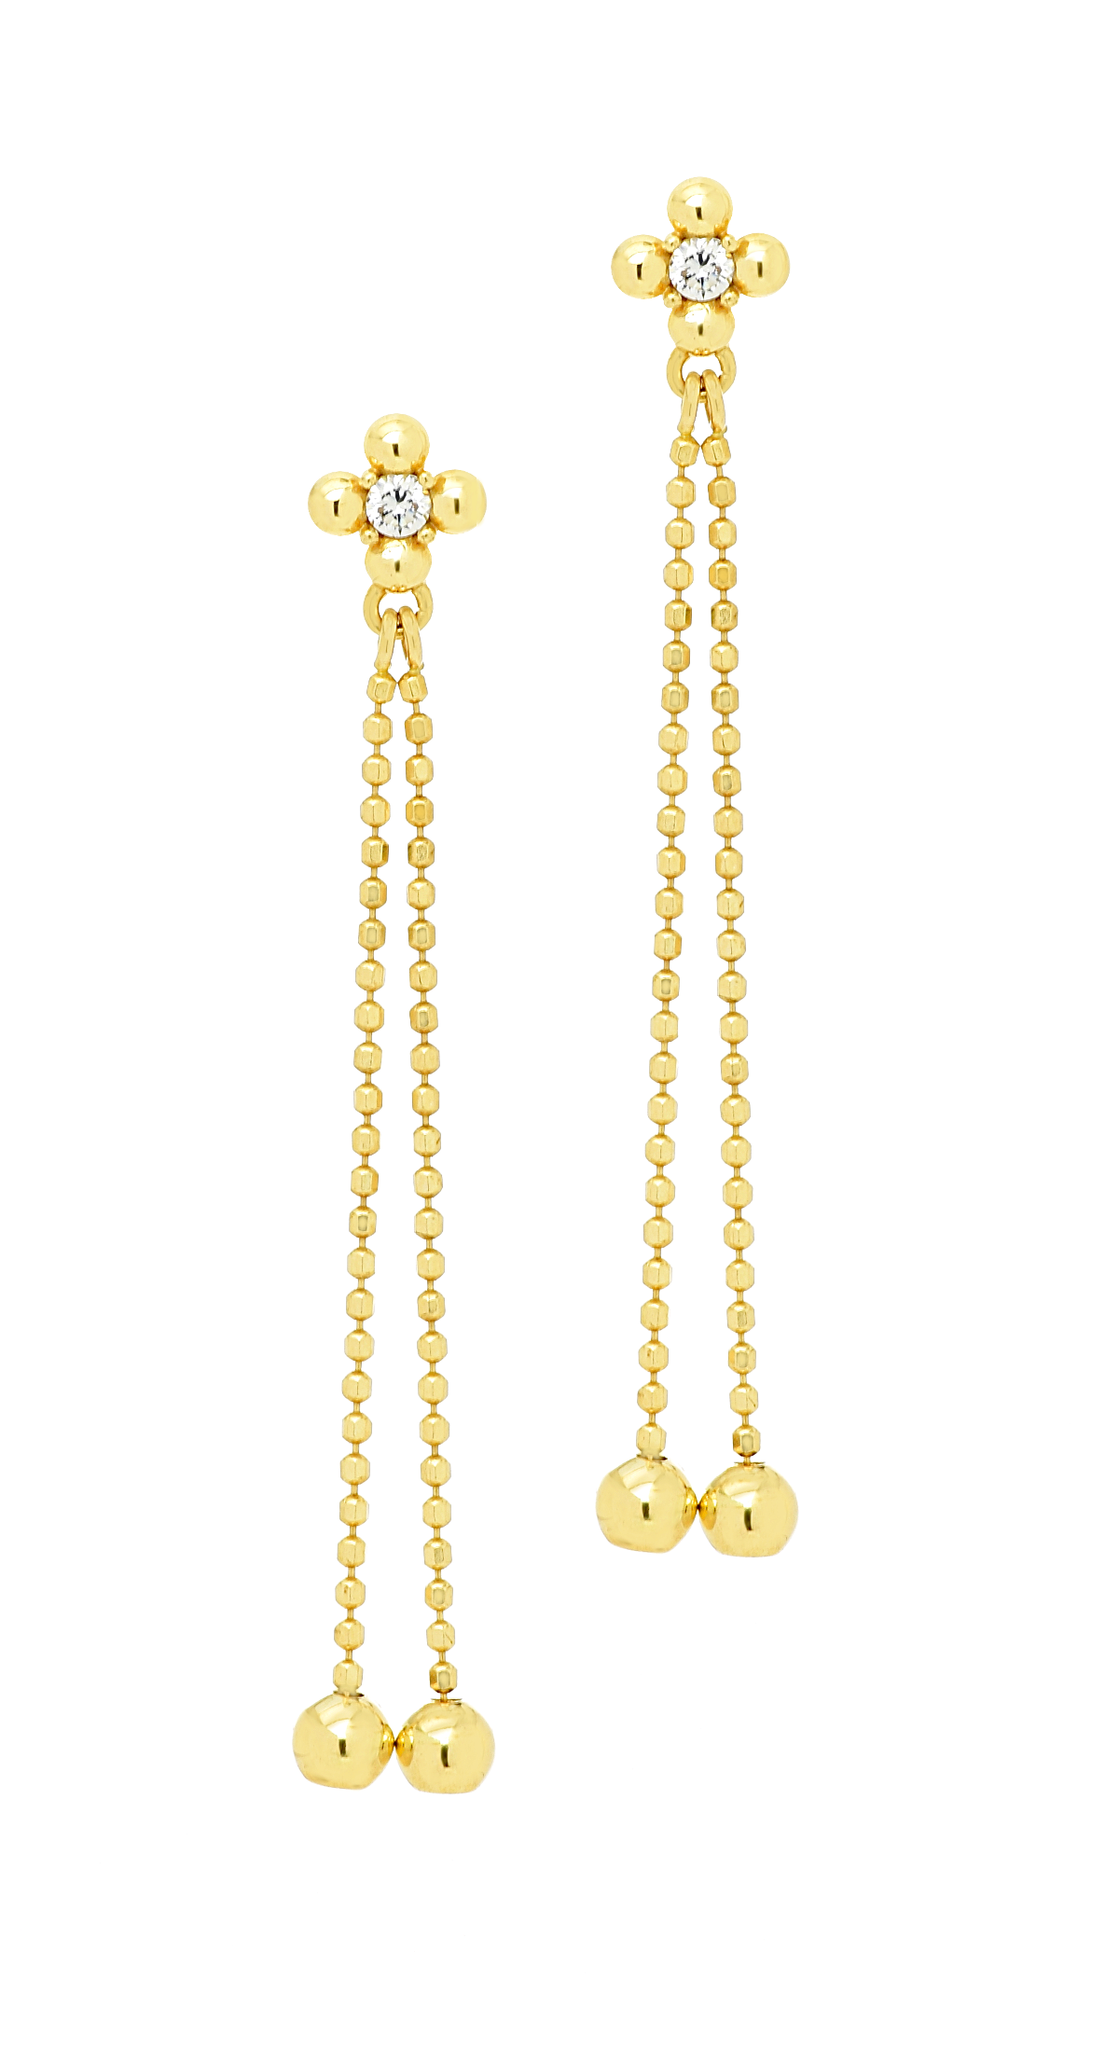 14k Yellow Gold Dangling Earrings with CZ Stones - Anny Gabriella NY